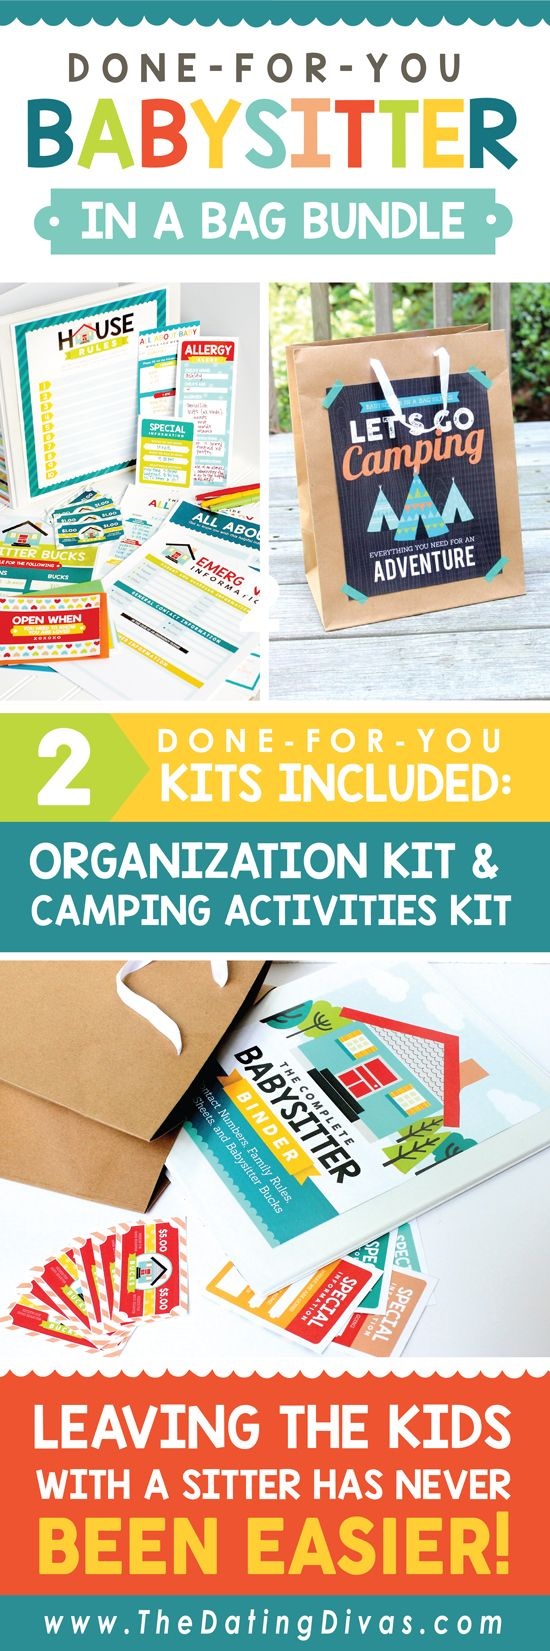 best ideas about babysitters babysitter babysitter activities for kids camping edition